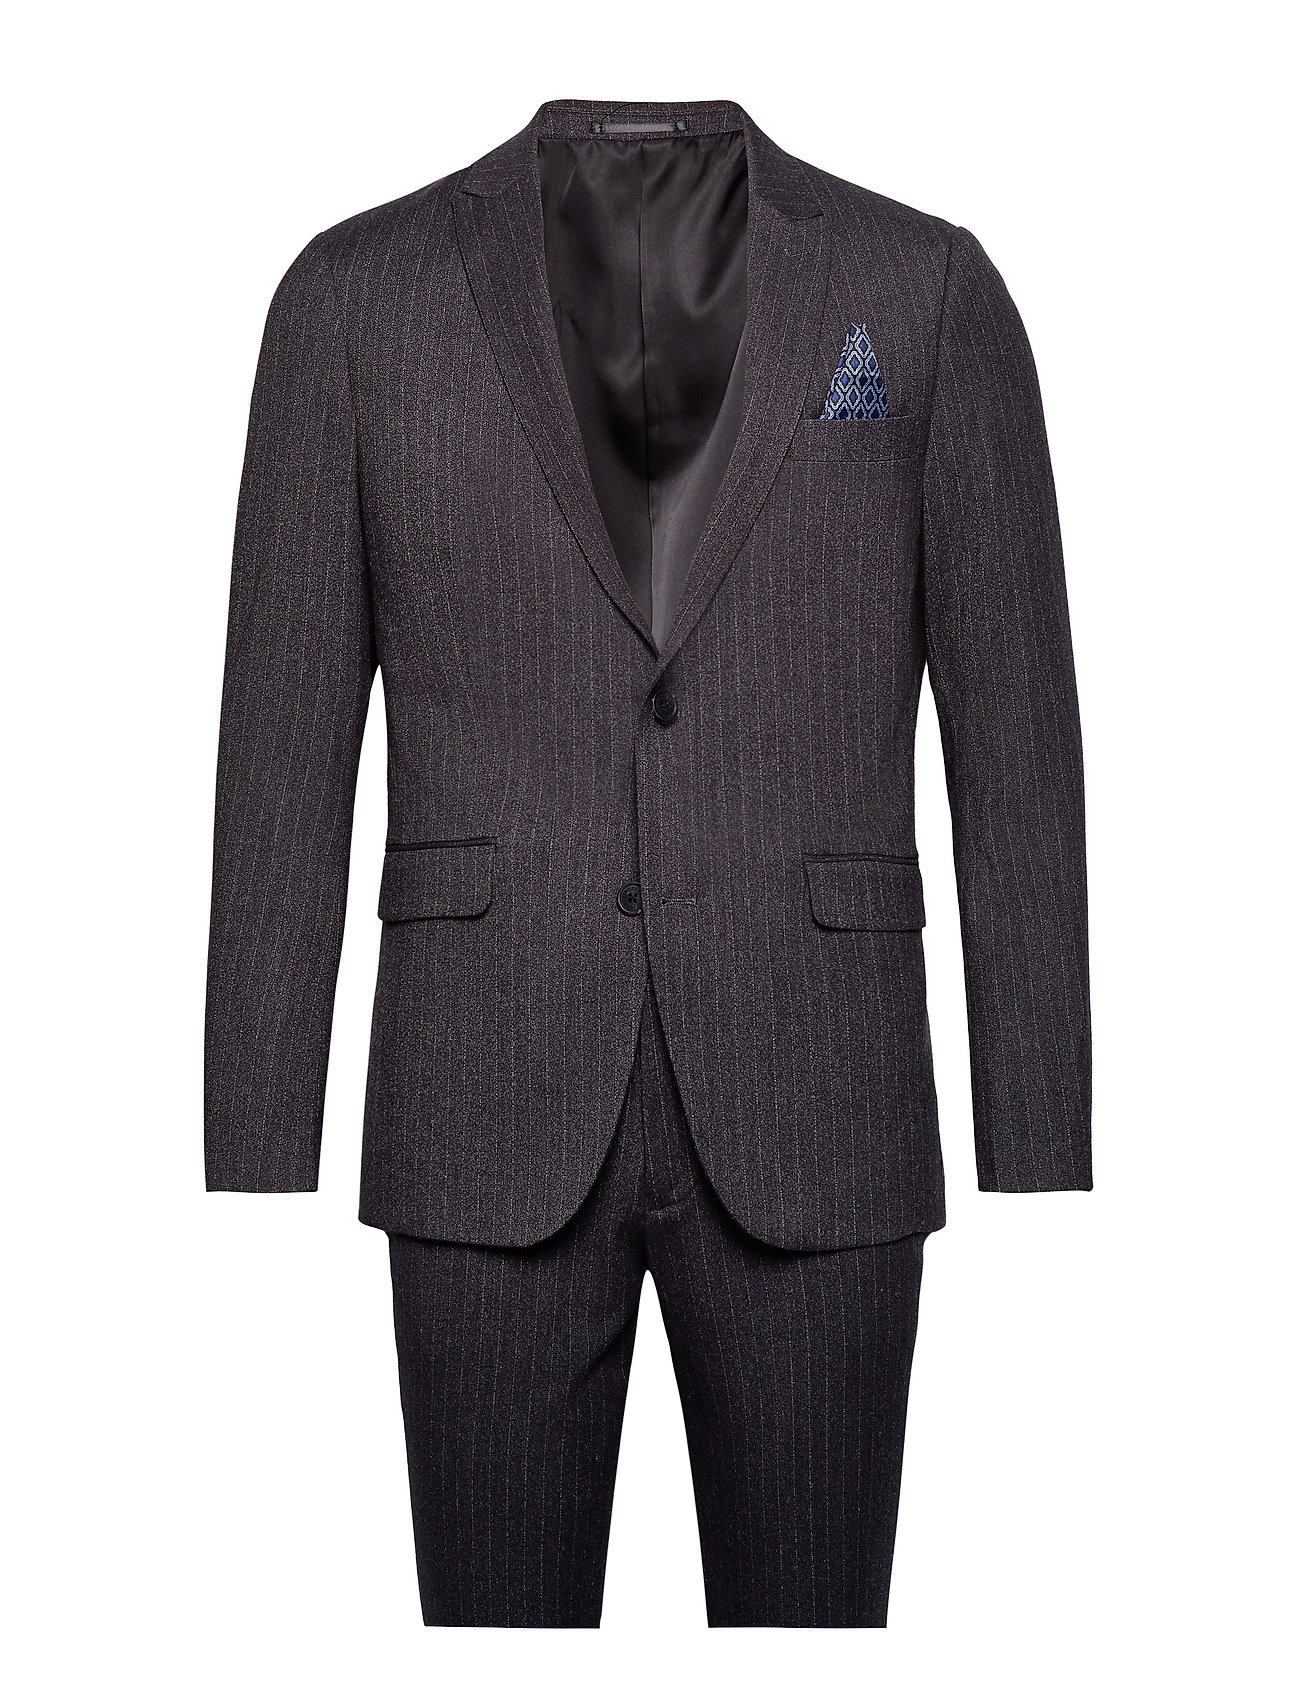 Lindbergh Pin striped suit - DK GREY MEL